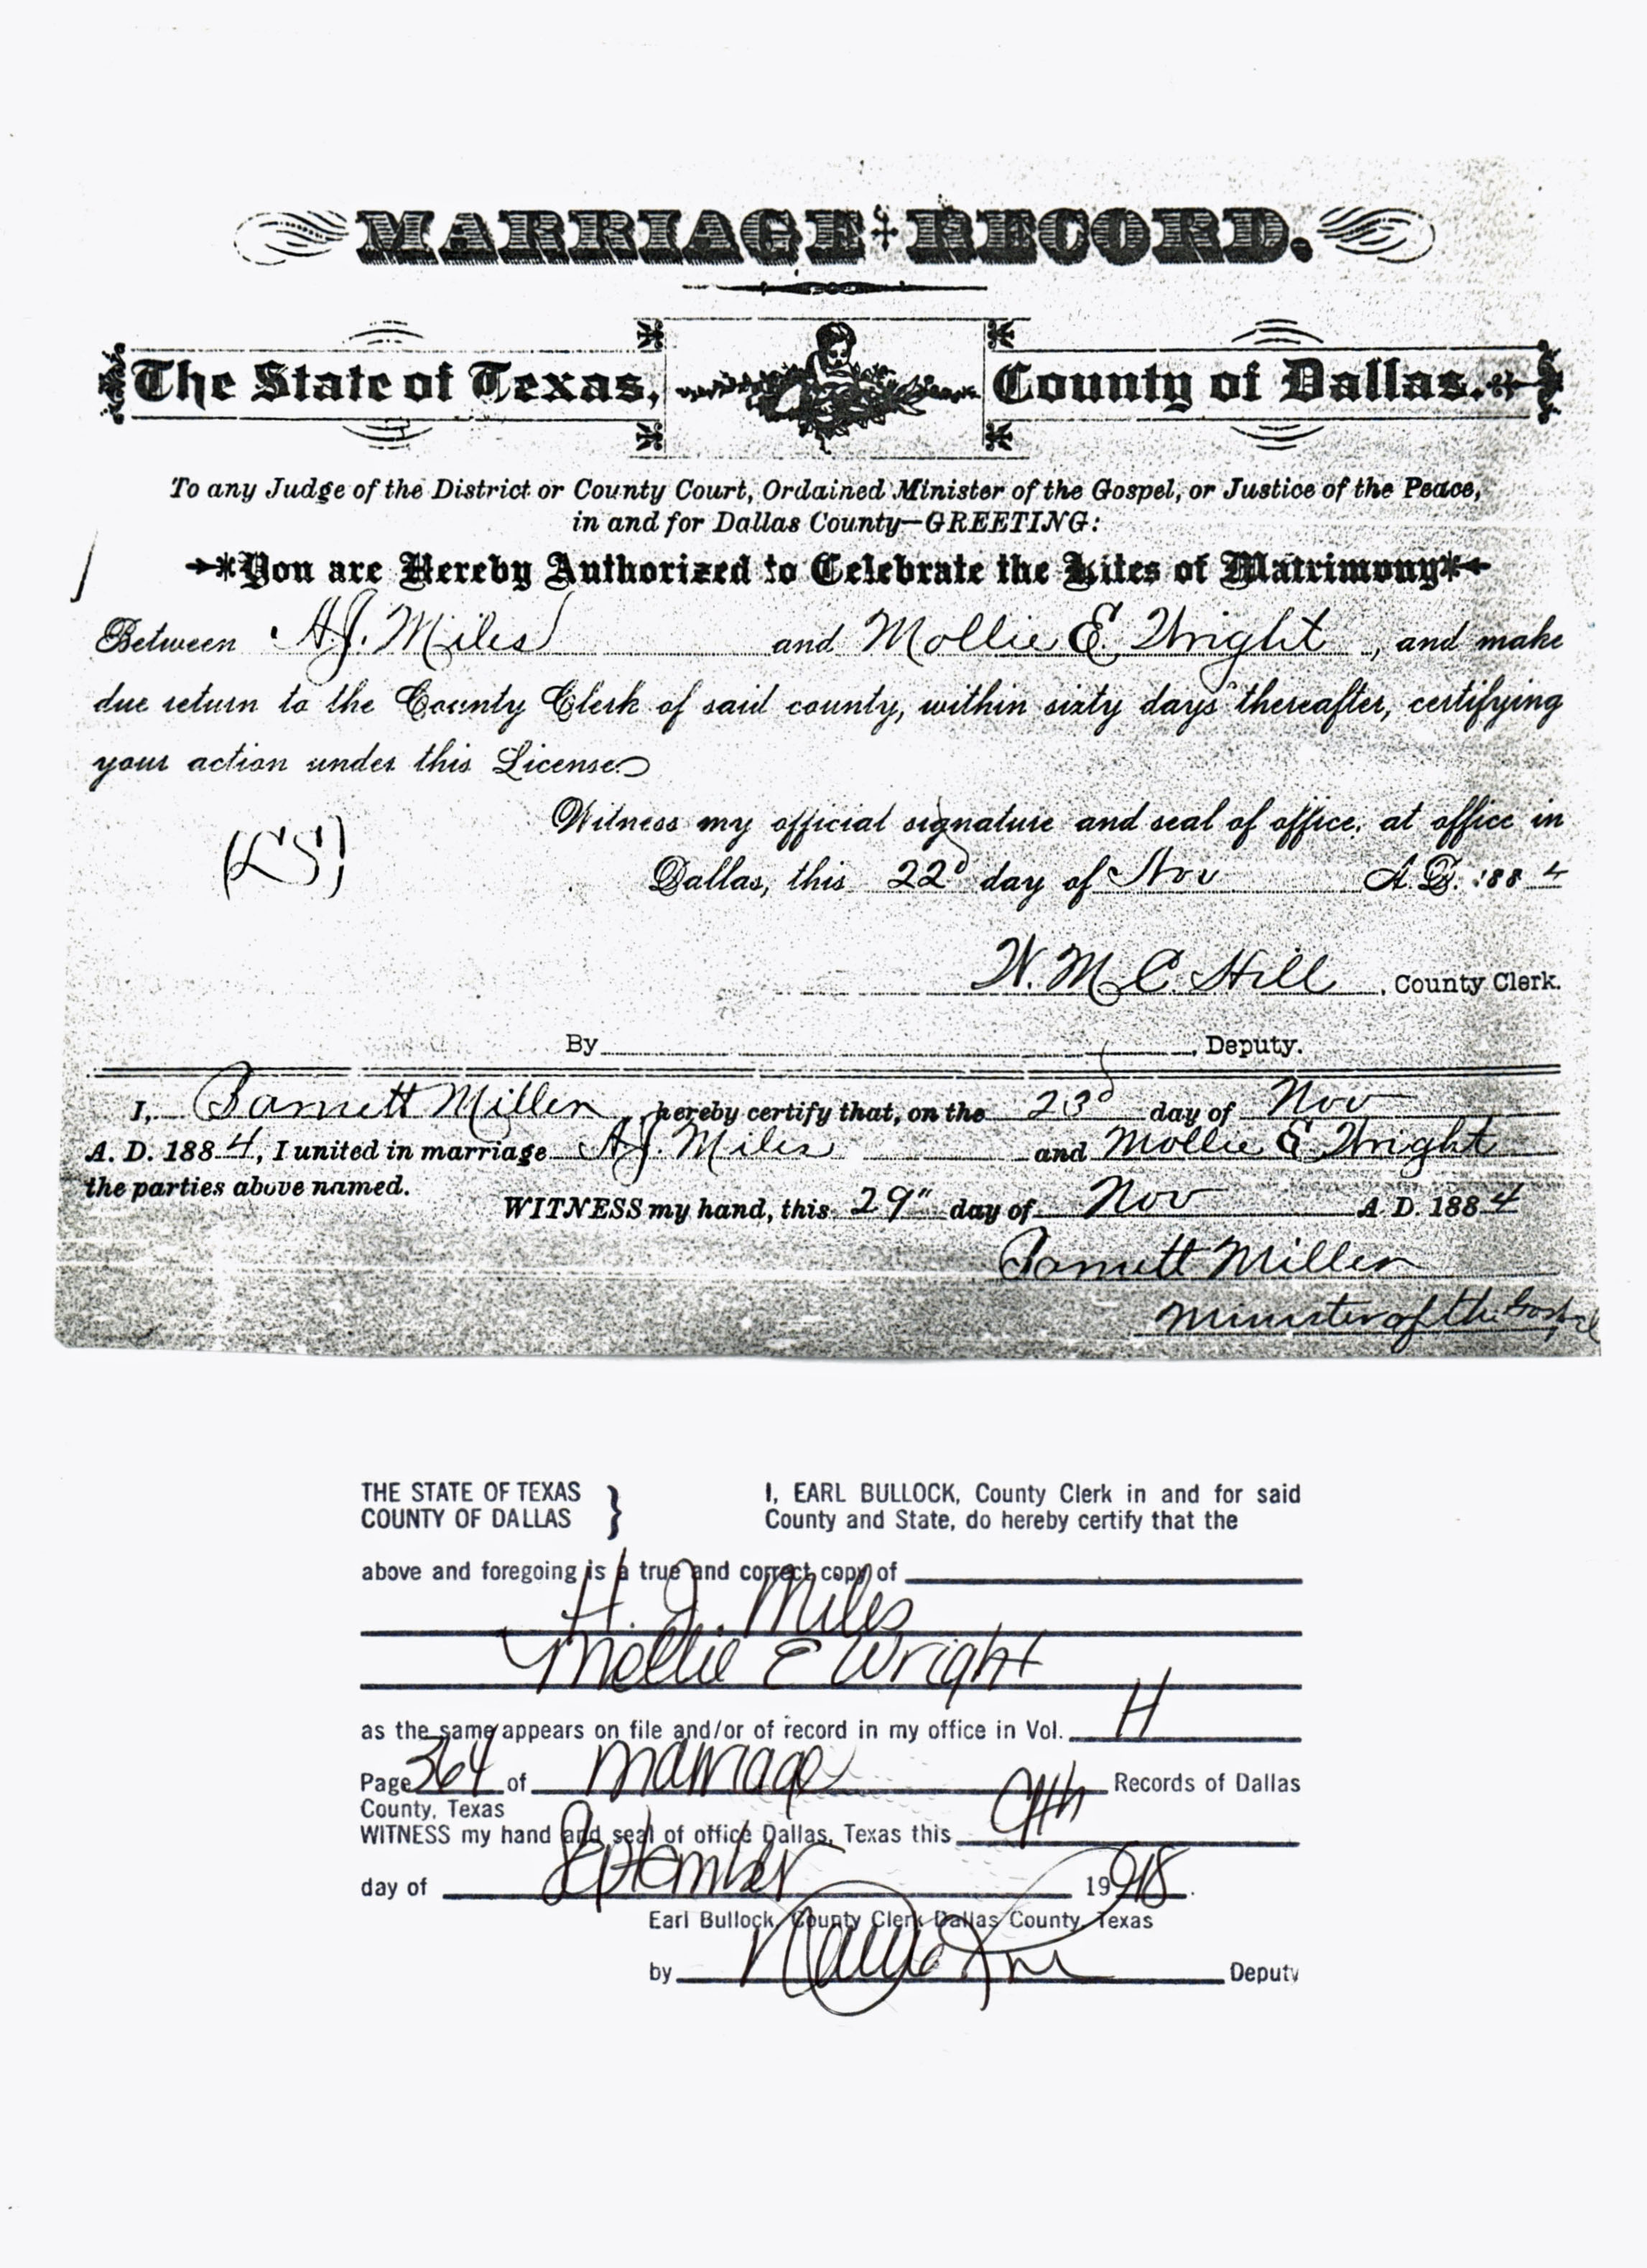 Example of gaon panchayat certificate business marketing manager jackson miles mollie elizabeth spencer marriage certificate 22 november 1884 islamic marriage certificate template example of gaon panchayat certificate altavistaventures Images